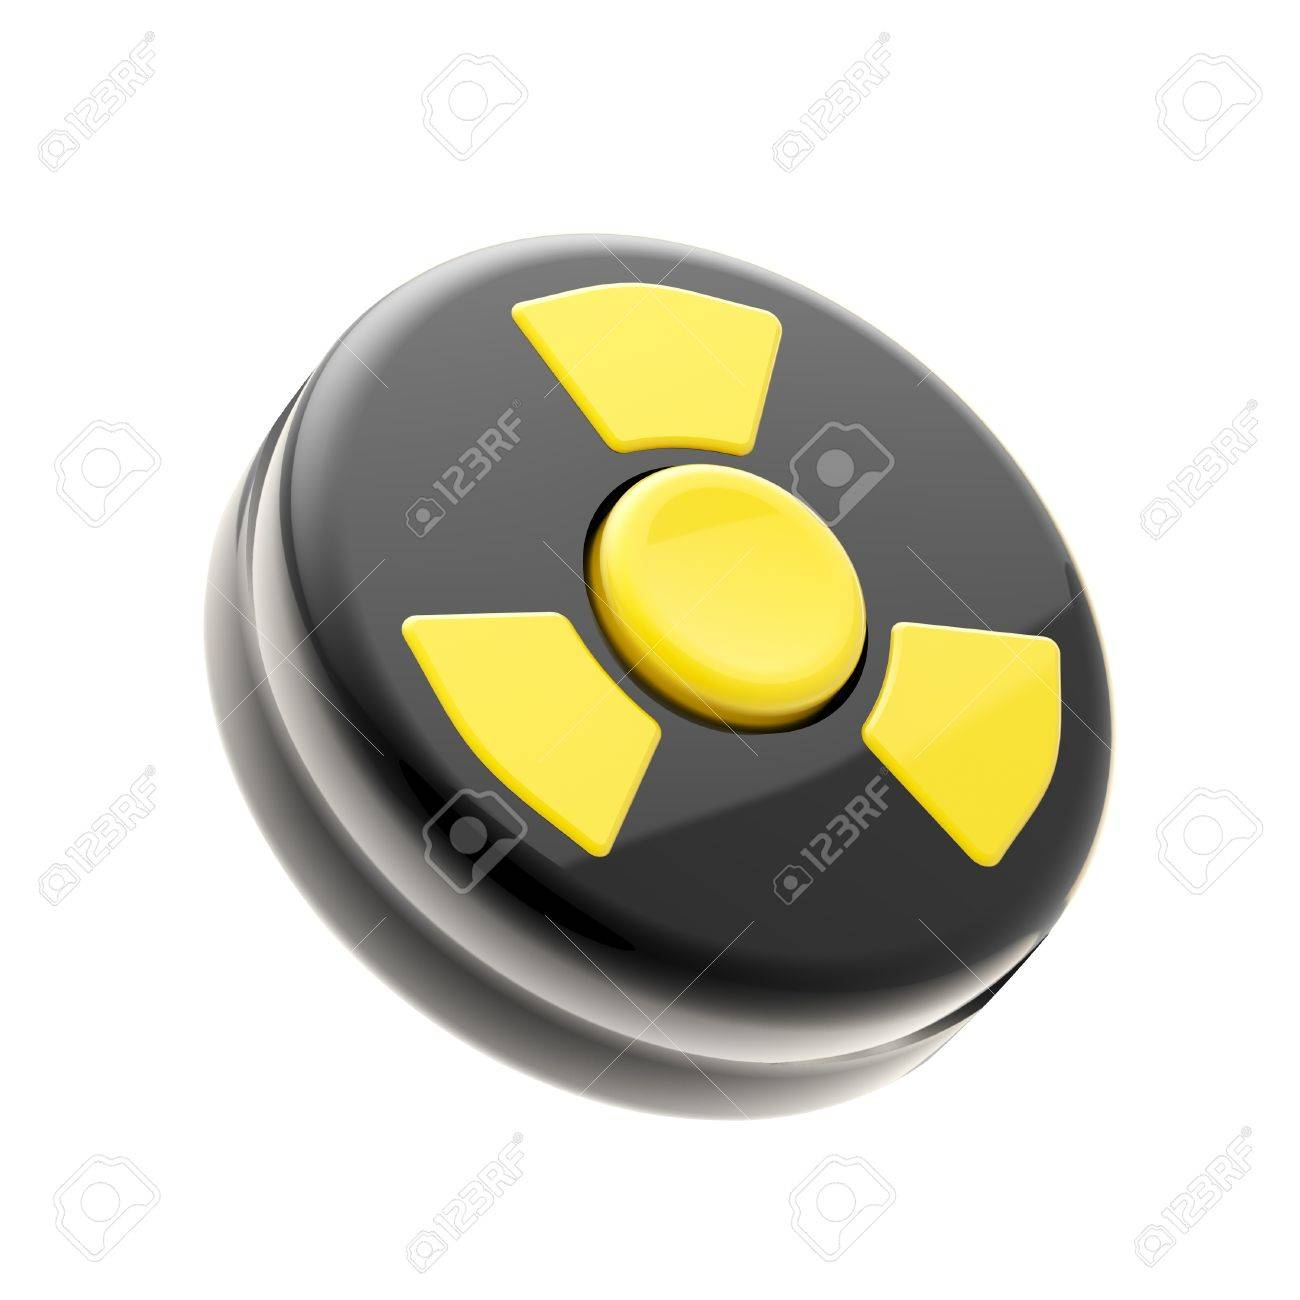 Black control panel with one yellow nuclear button Stock Photo - 12448803